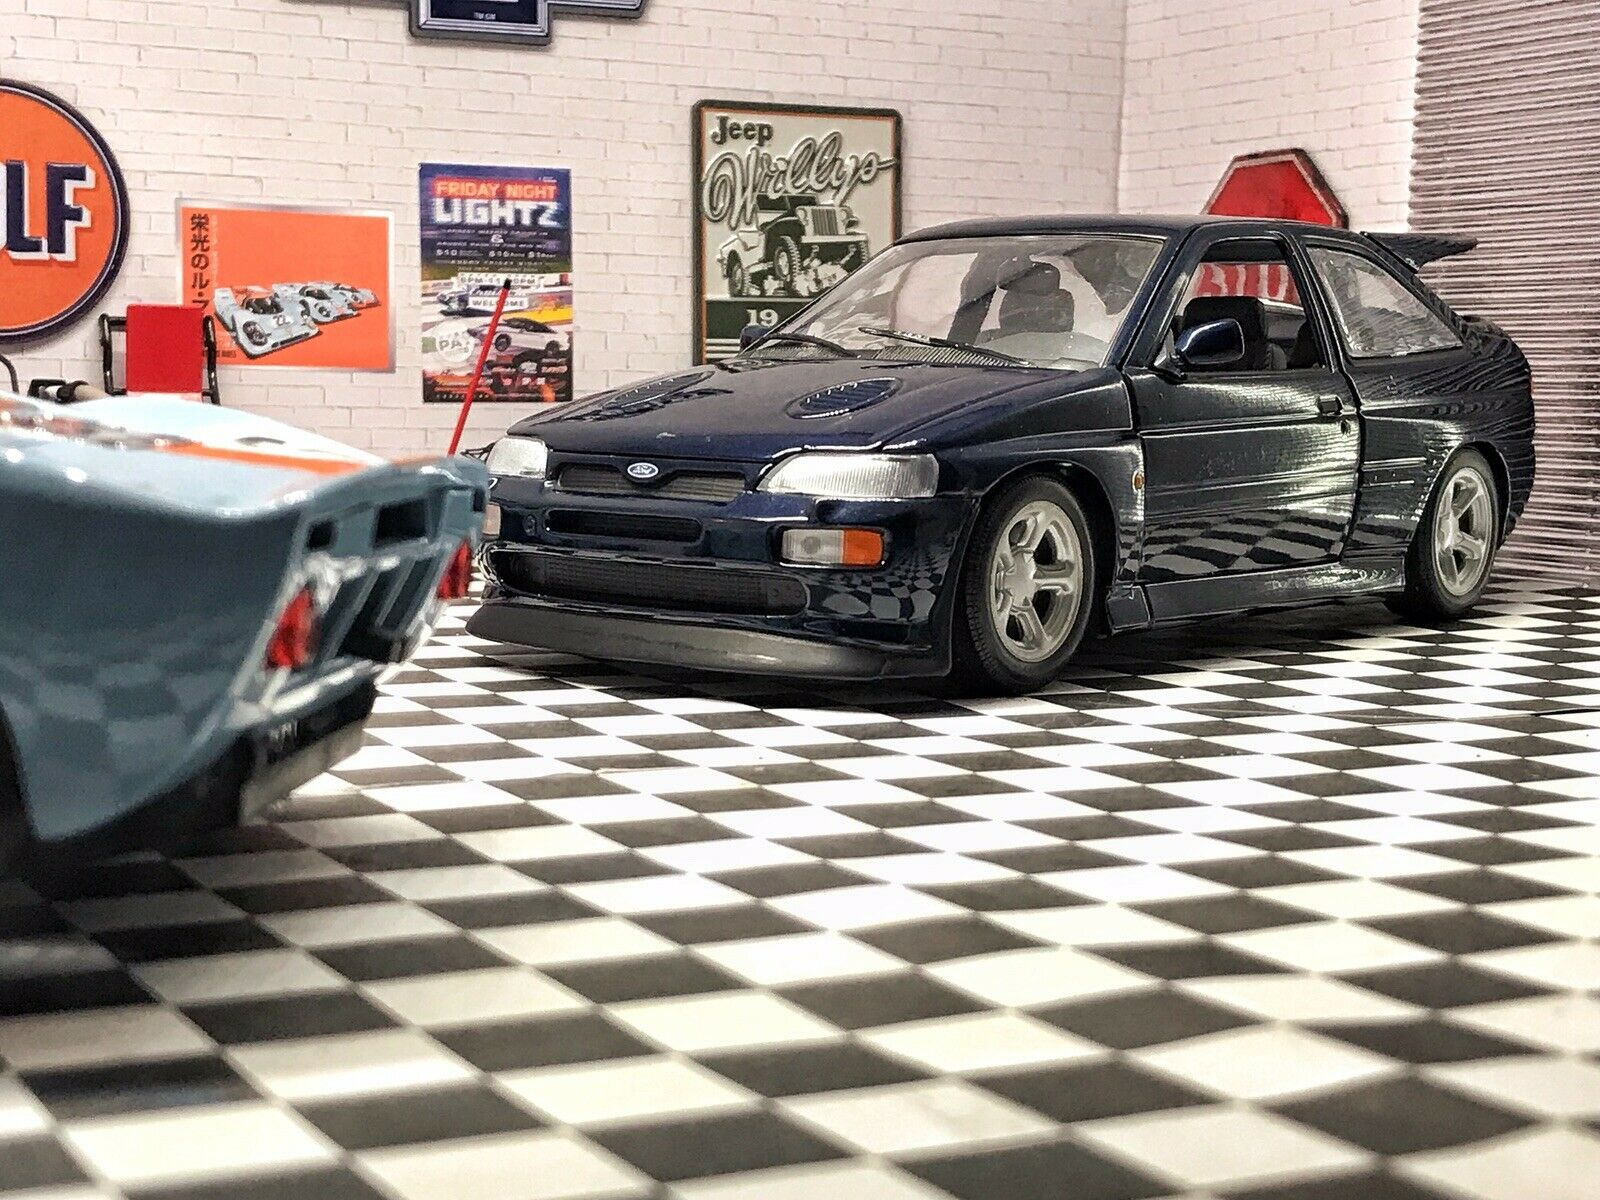 UT 1/18 Scale Diecast - 180 082101 Ford Escort RS Cosworth Metallic blue RAre Us